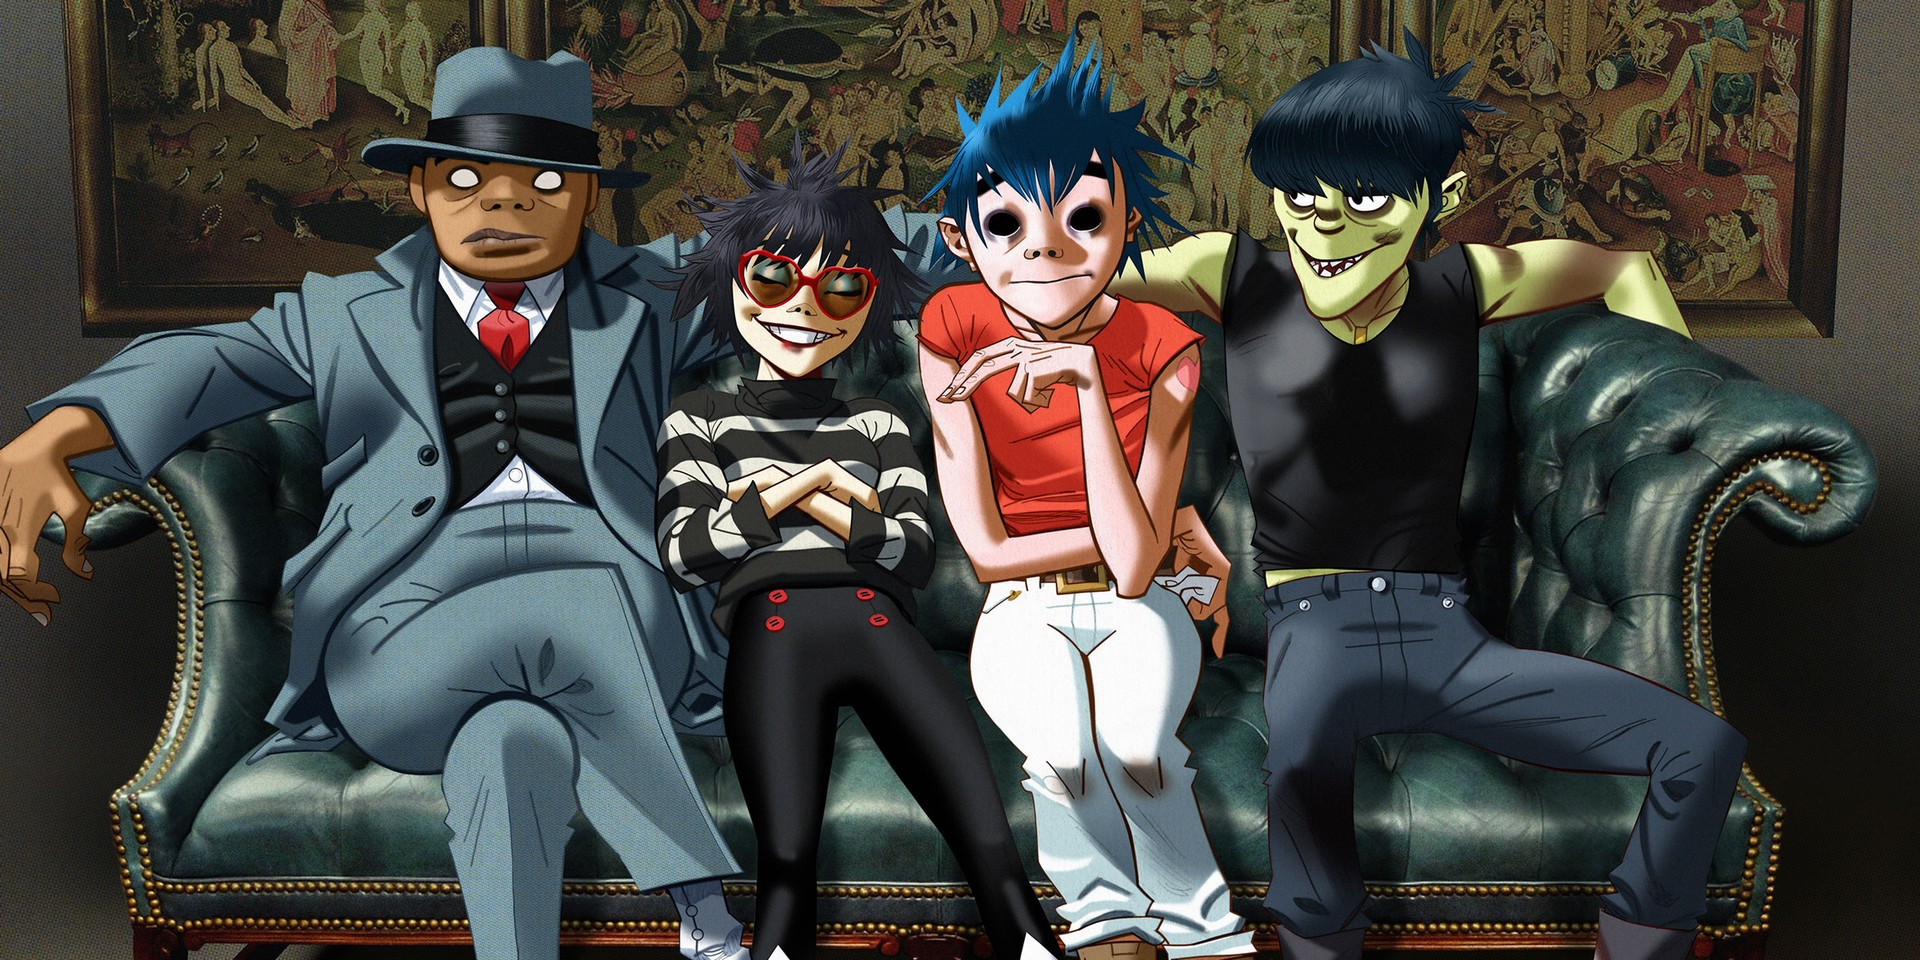 Tickets to Gorillaz' movie screening in Singapore now on sale